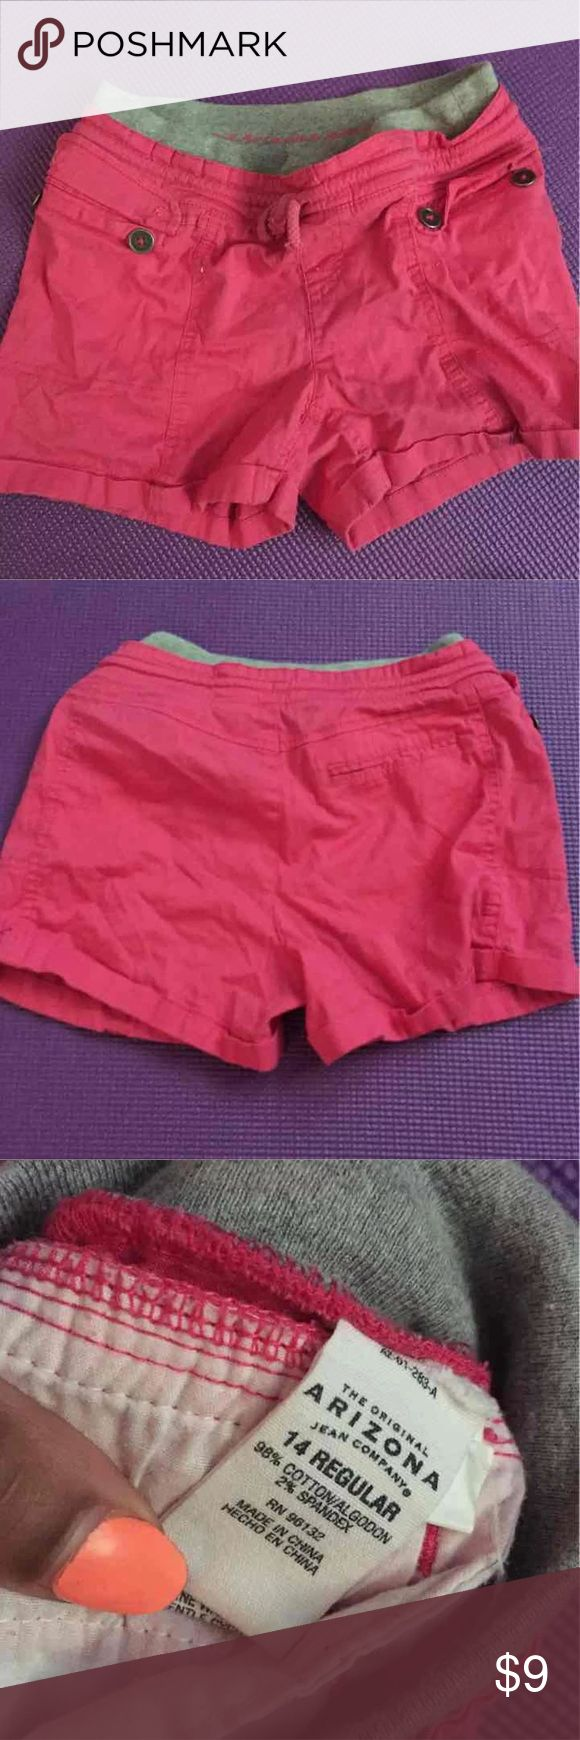 Pink Shorts Arizona Jeans Brand  Sized Girls 14  Could account to a XS in women's   Has a small pocket on the back  Drawstring  Two button yo pockets  Grey waistband Arizona Jean Company Shorts